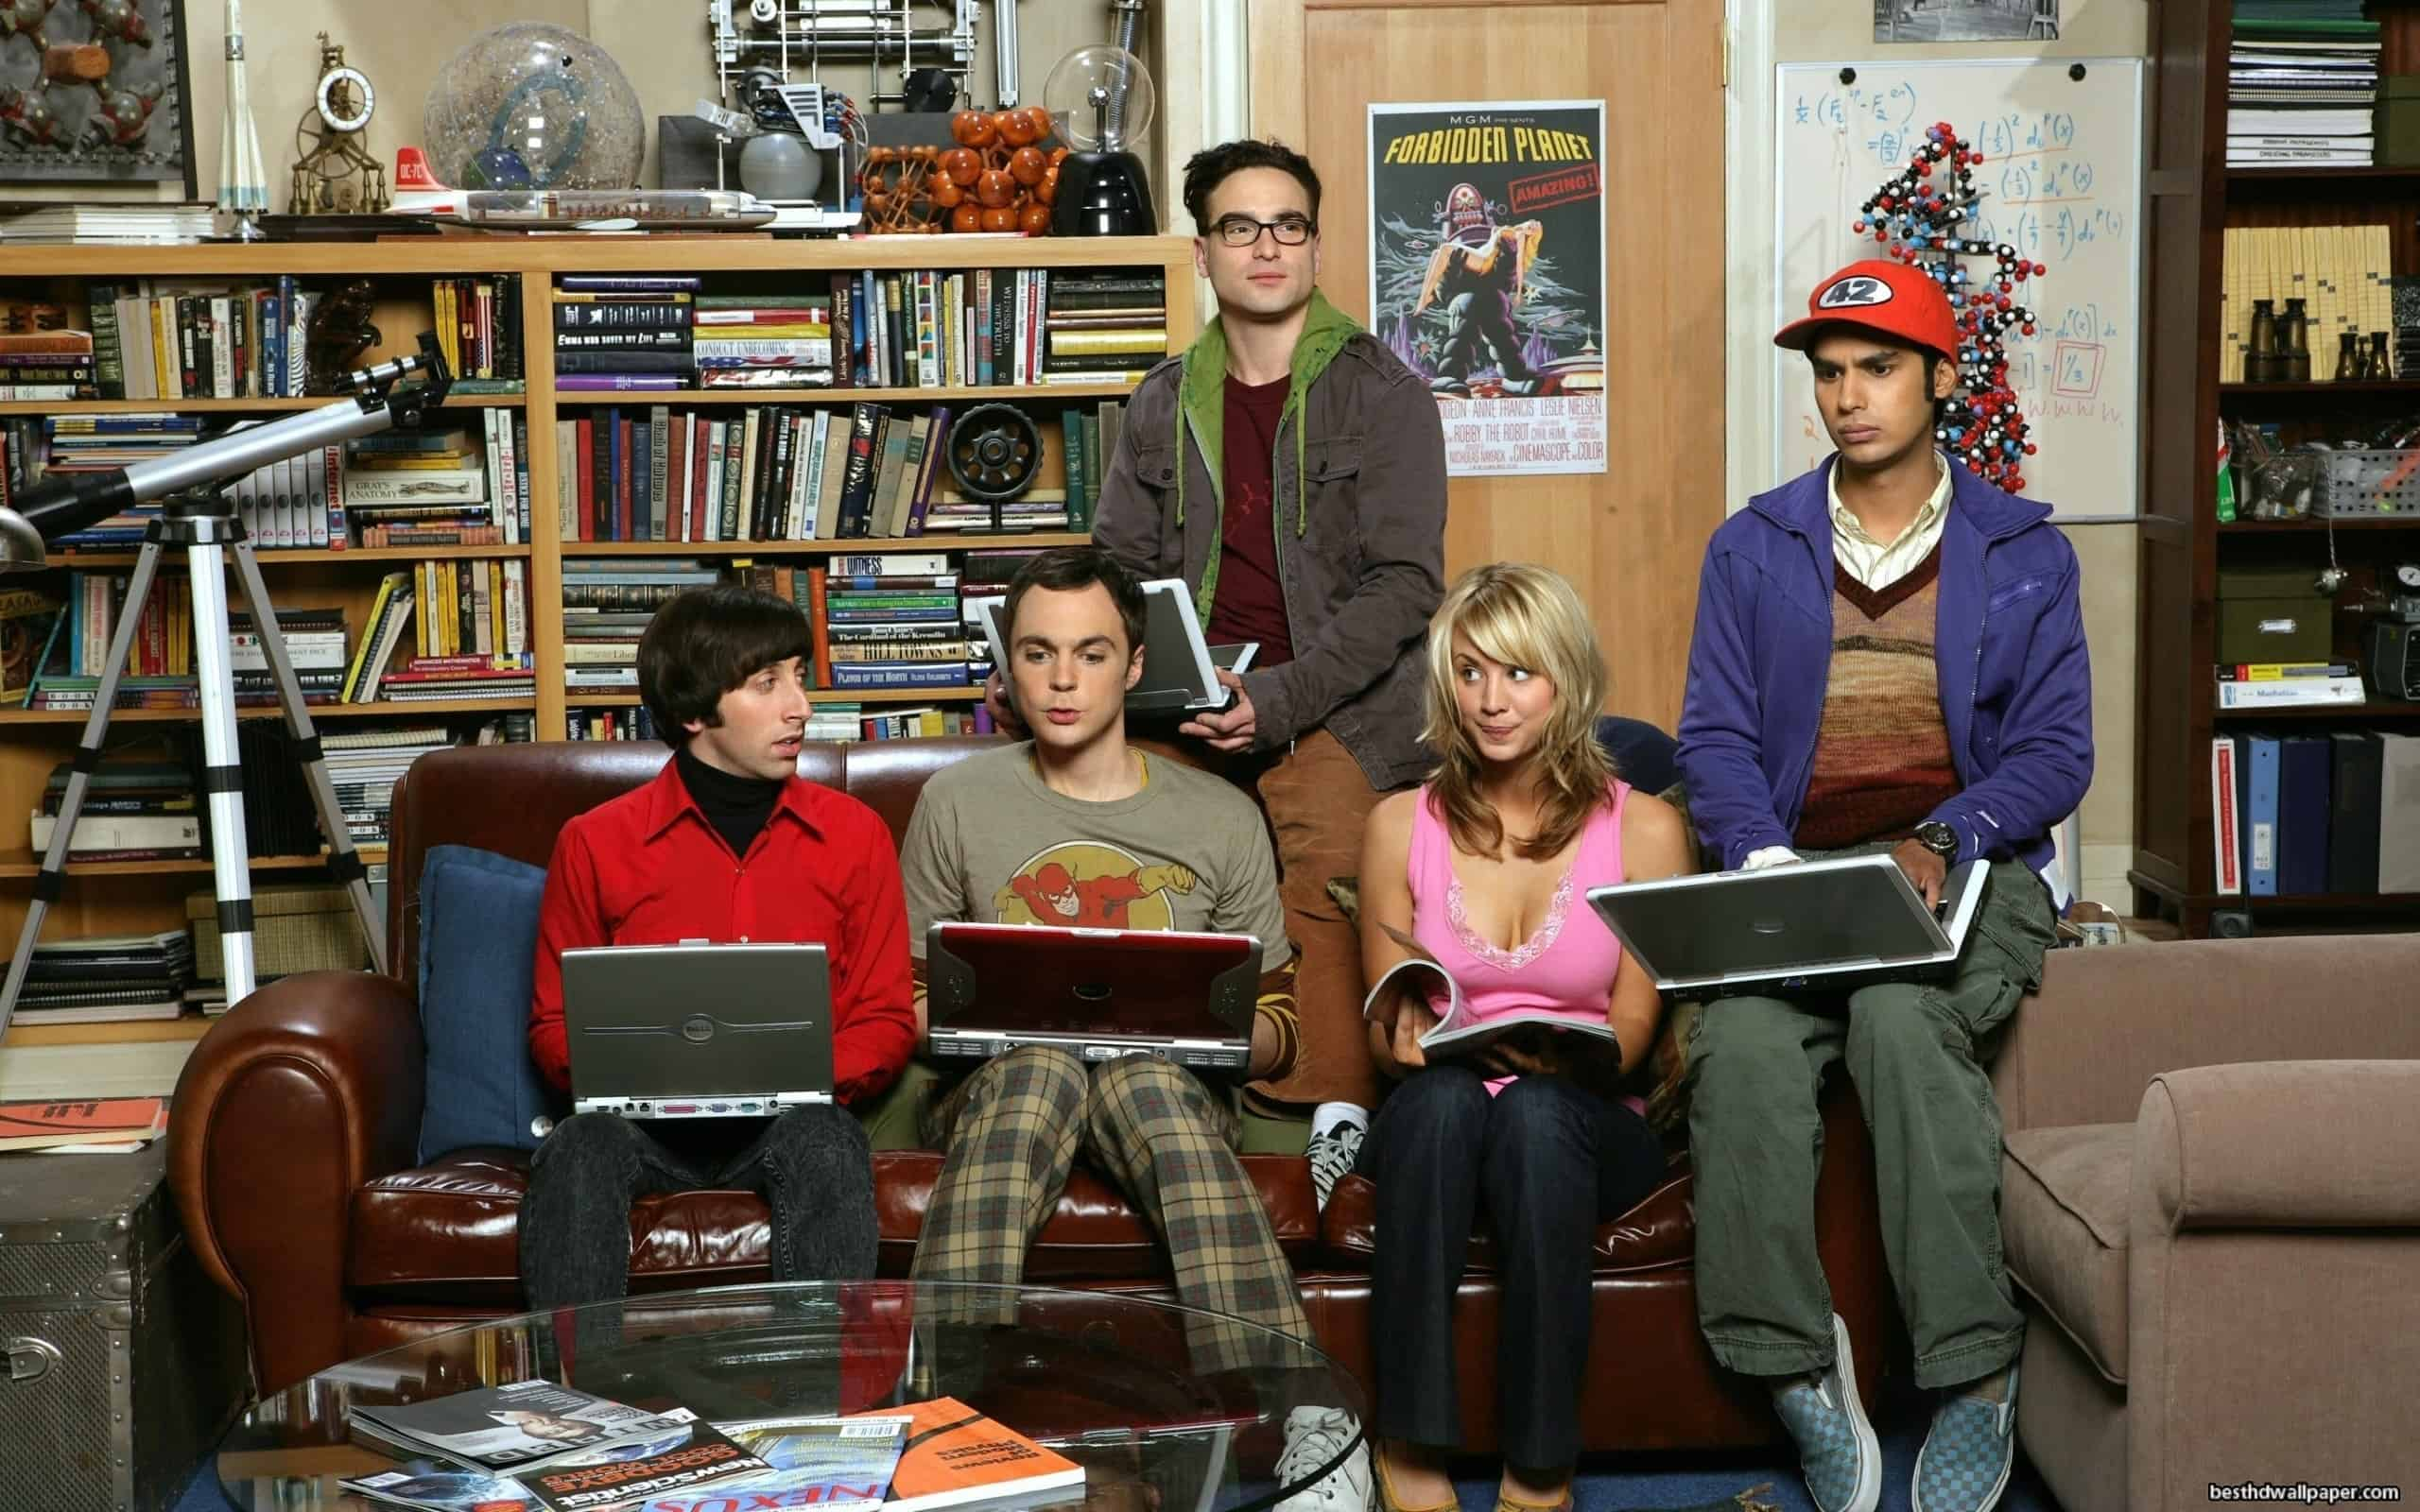 El Laboratorio de Medea: Machismo  en  The  Big  Bang  Theory